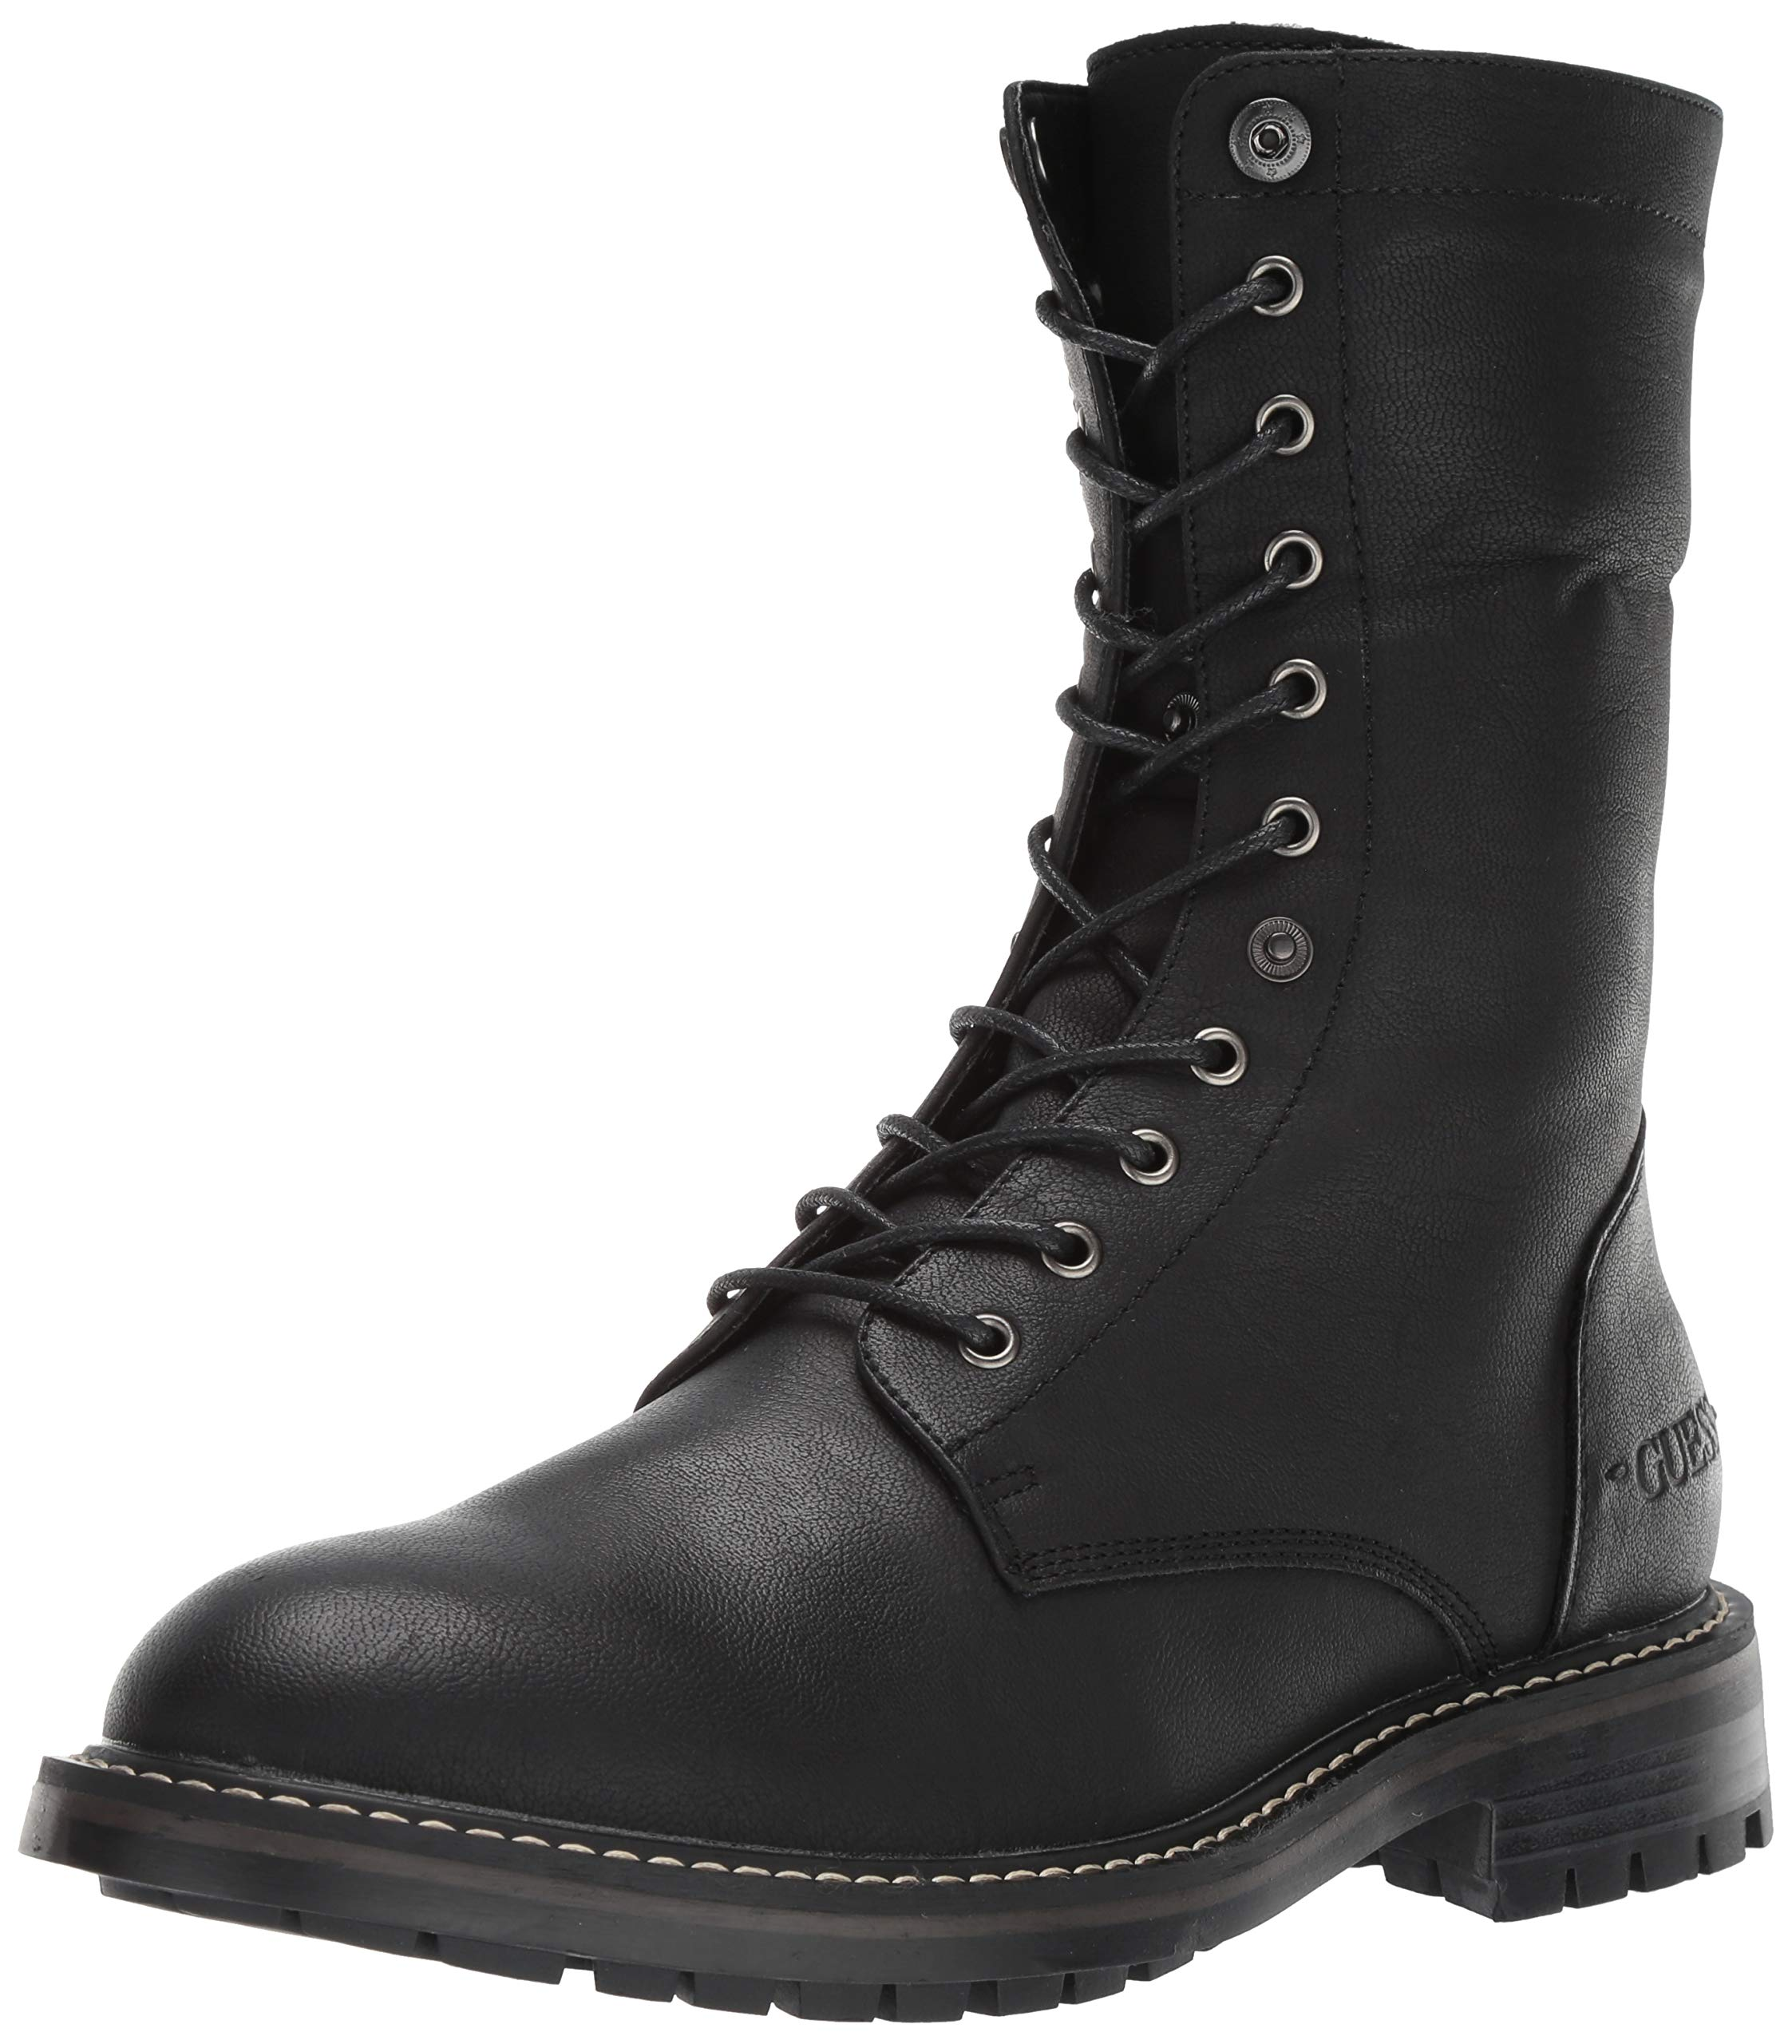 GUESS Men's Rune Combat Boot, Black, 10.5 M US